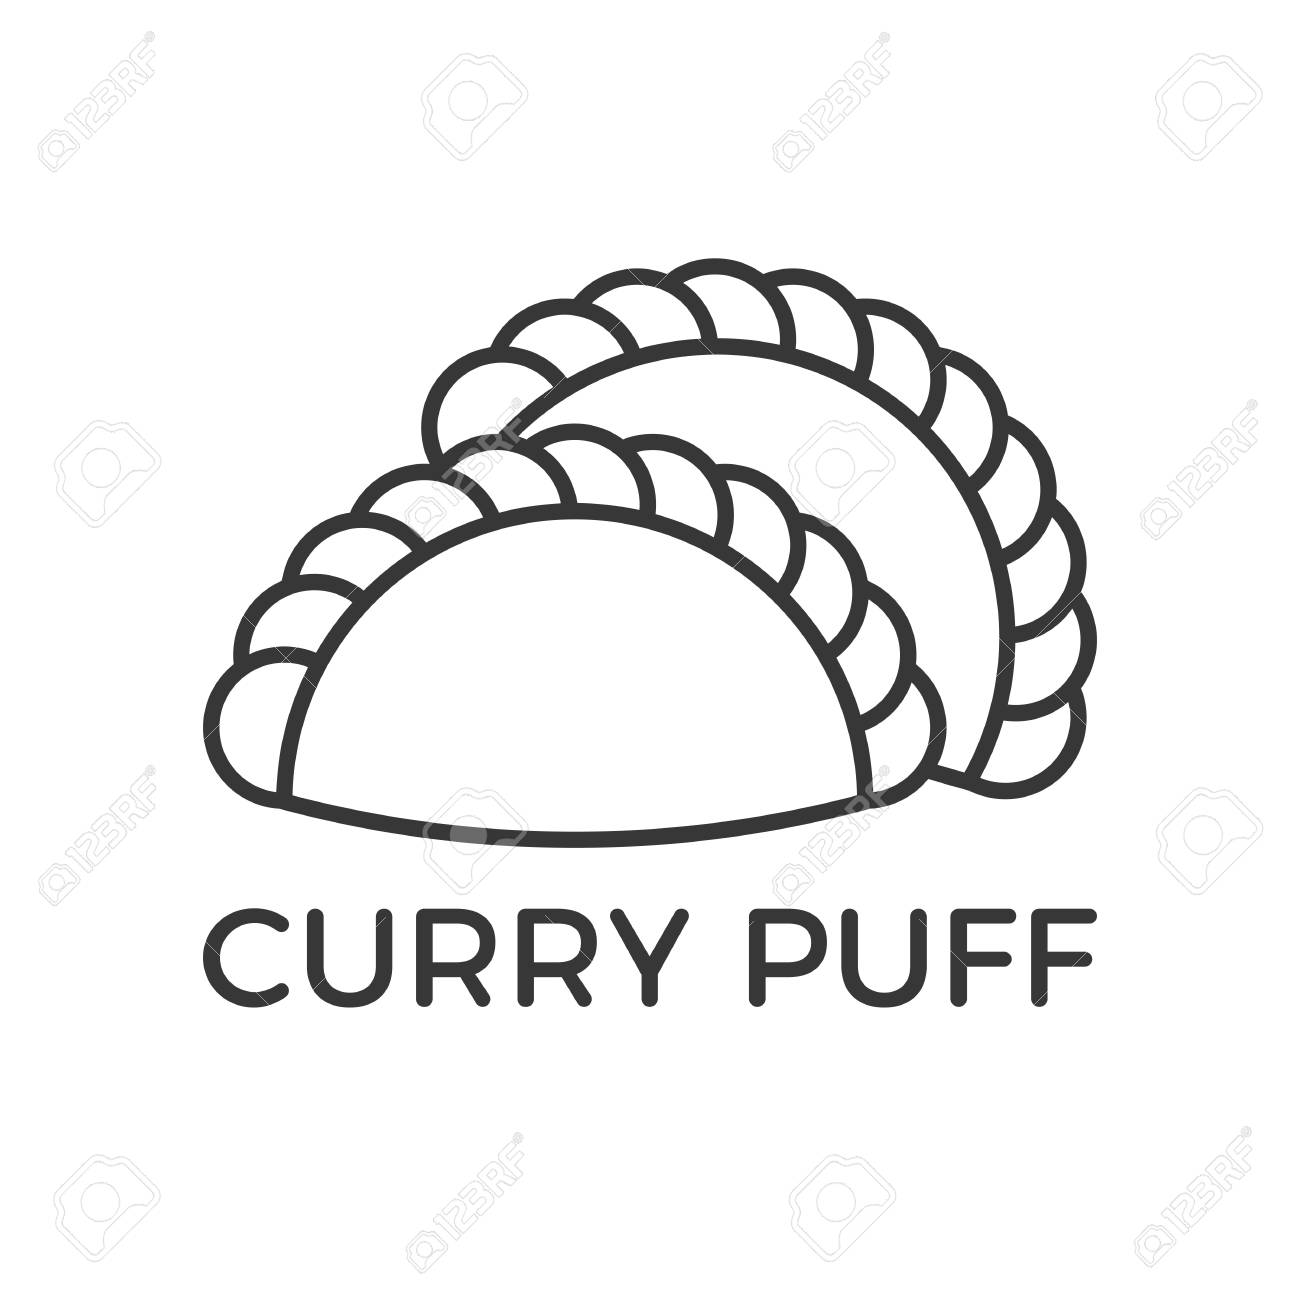 outline icon for use as pastry sign and logo such as curry puff.